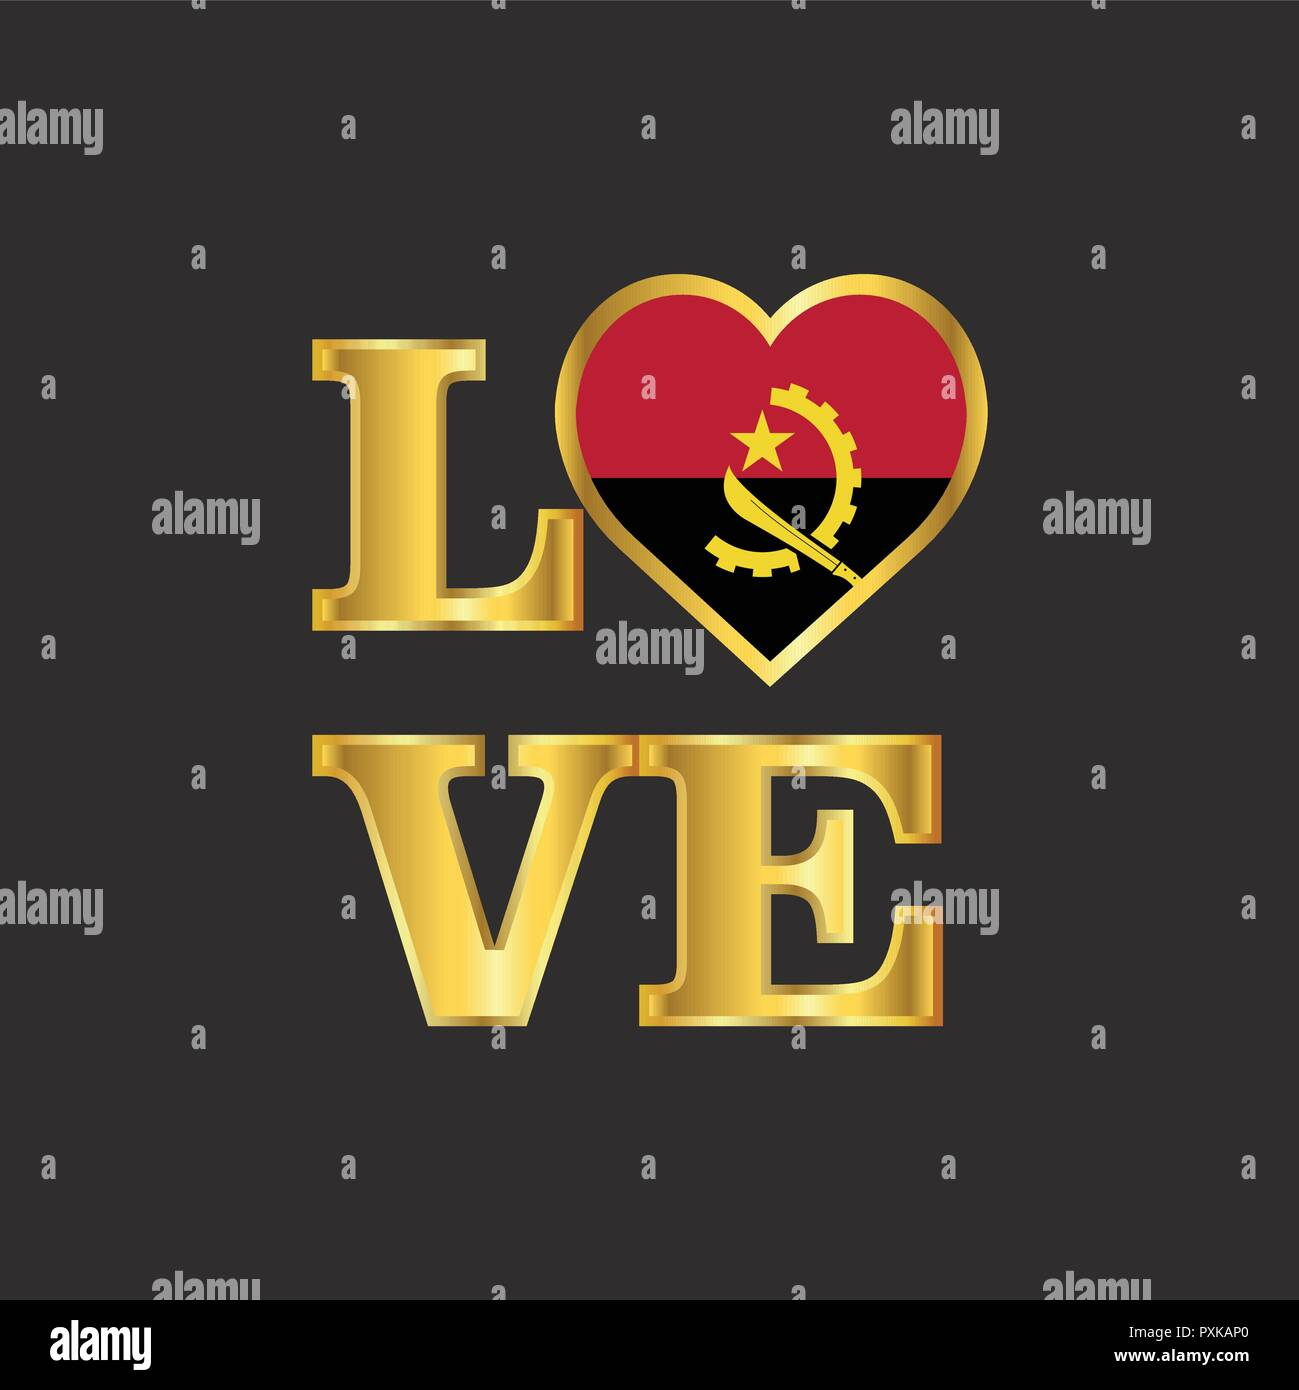 Love typography Angola flag design vector Gold lettering - Stock Image